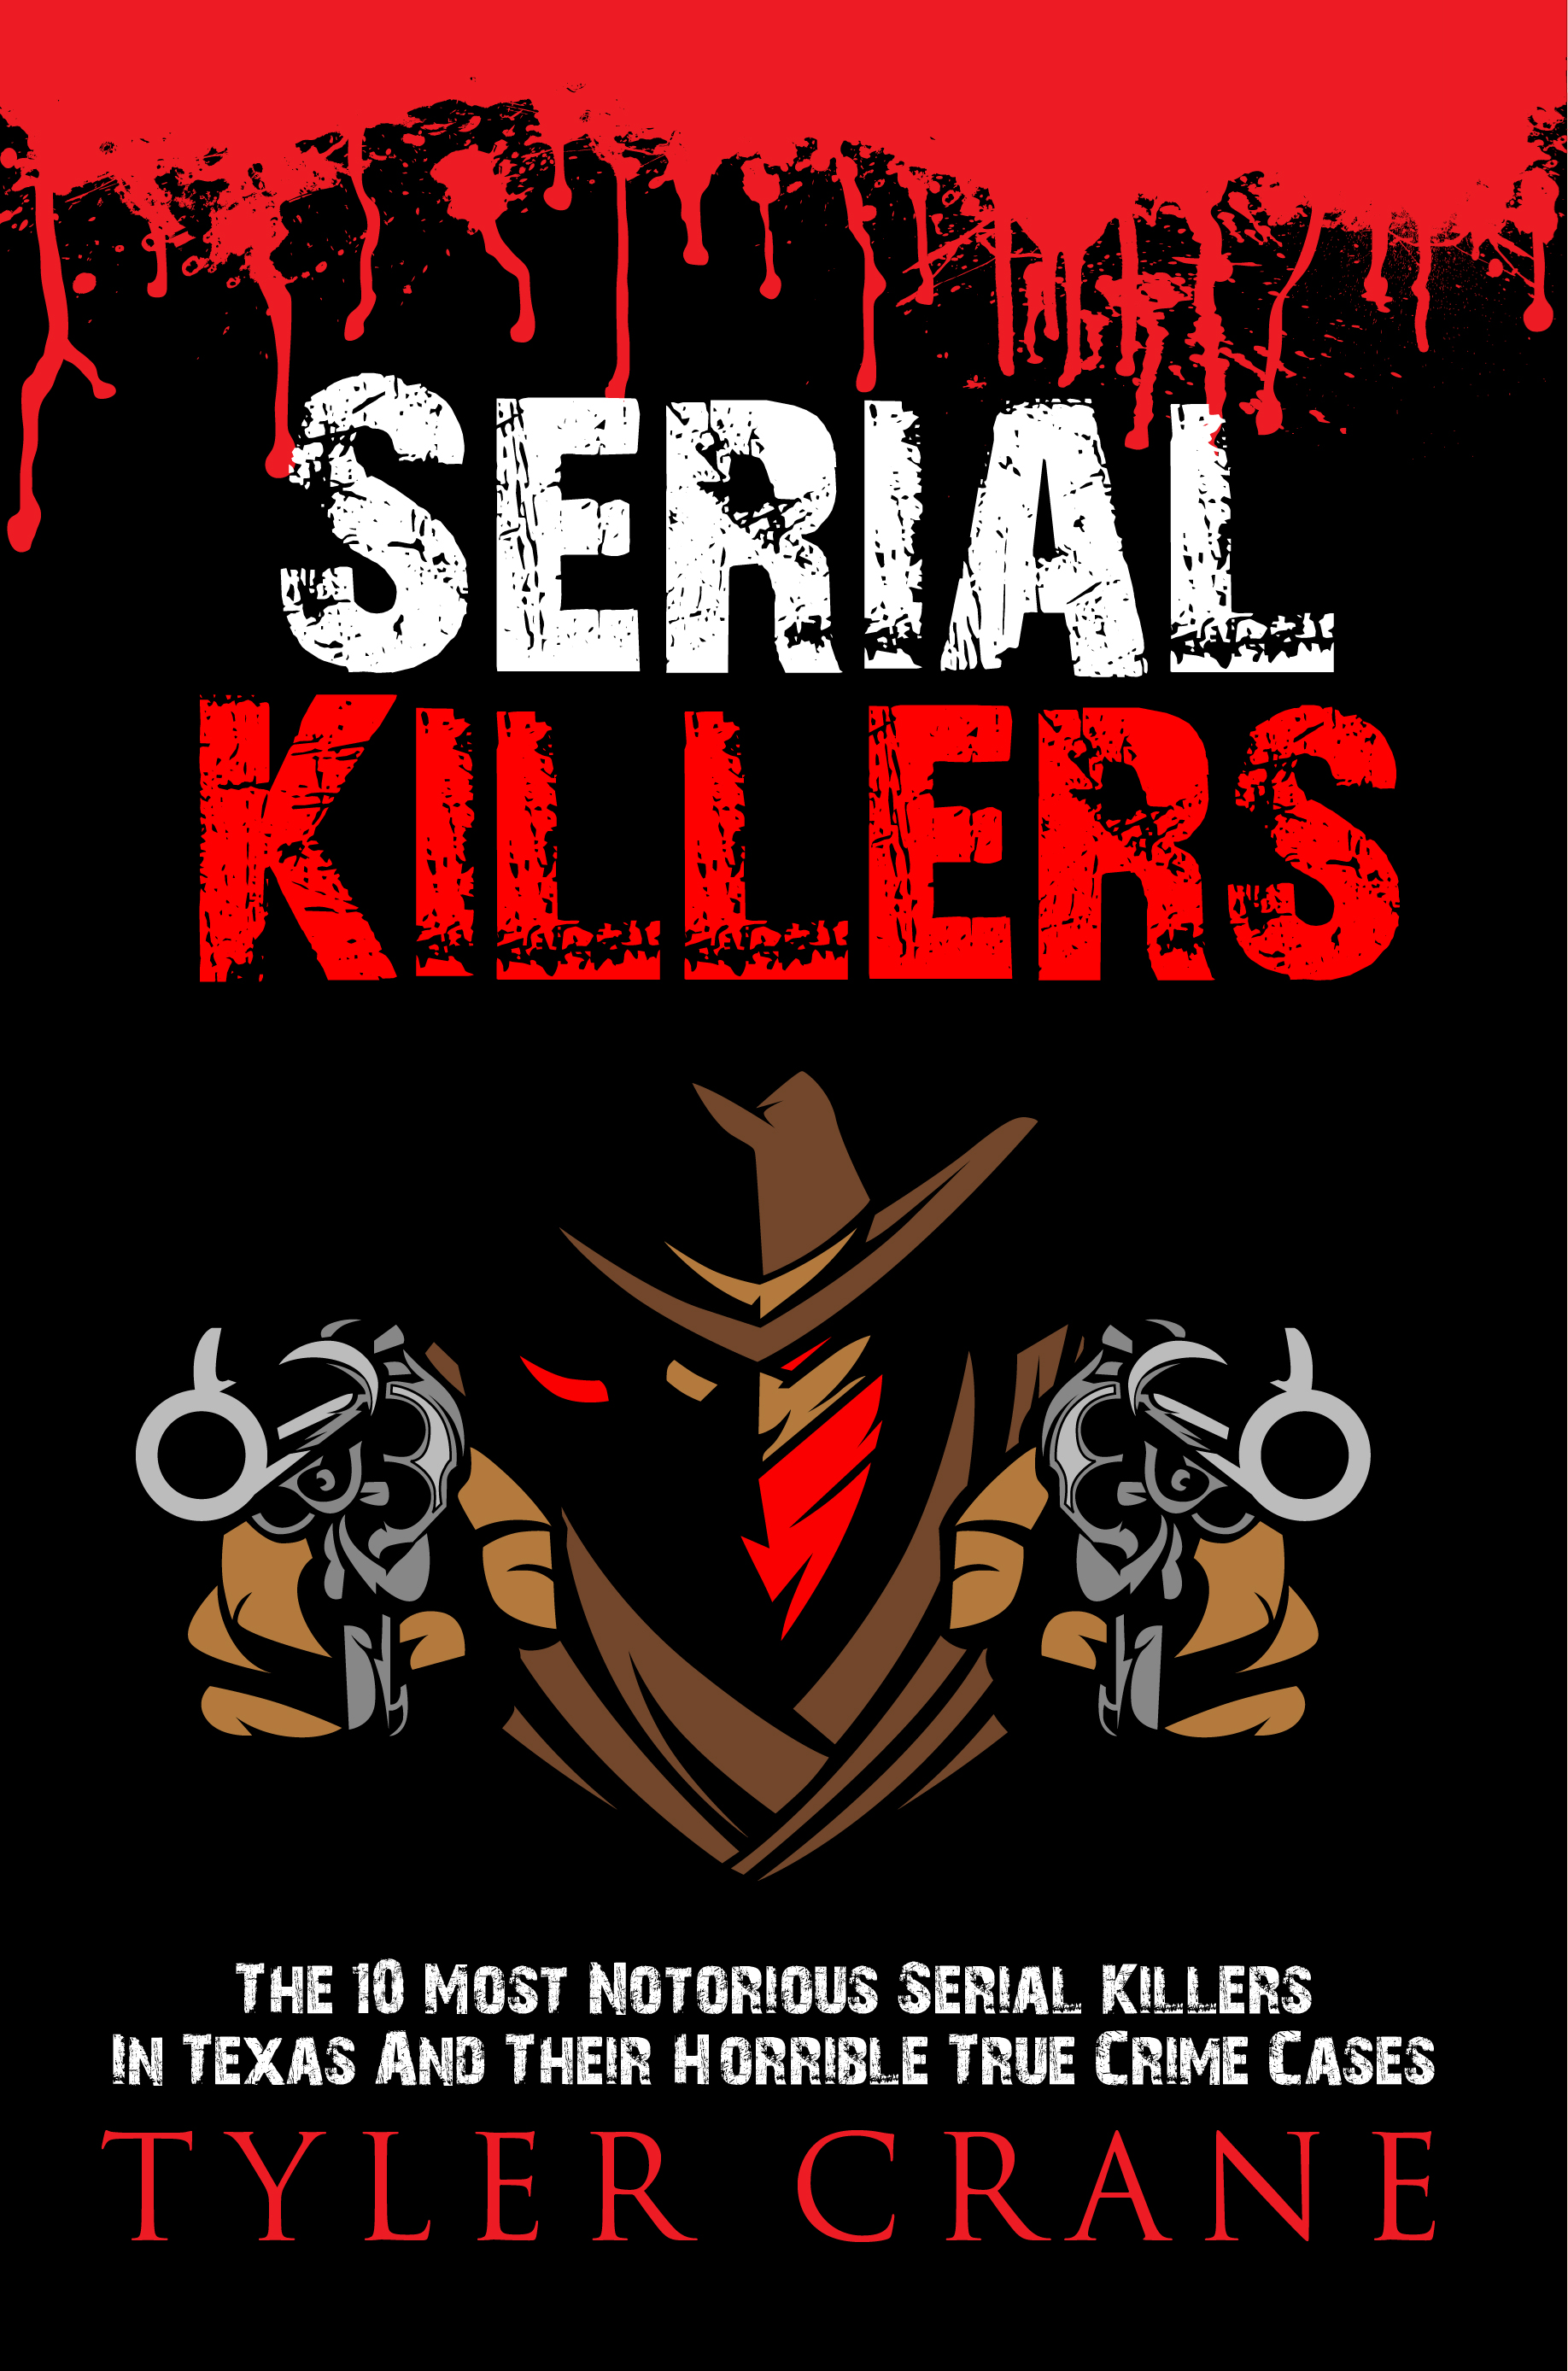 Serial Killers: The 10 Most Notorious Serial Killers In Texas And Their  Horrible True Crime Cases, an Ebook by Tyler Crane